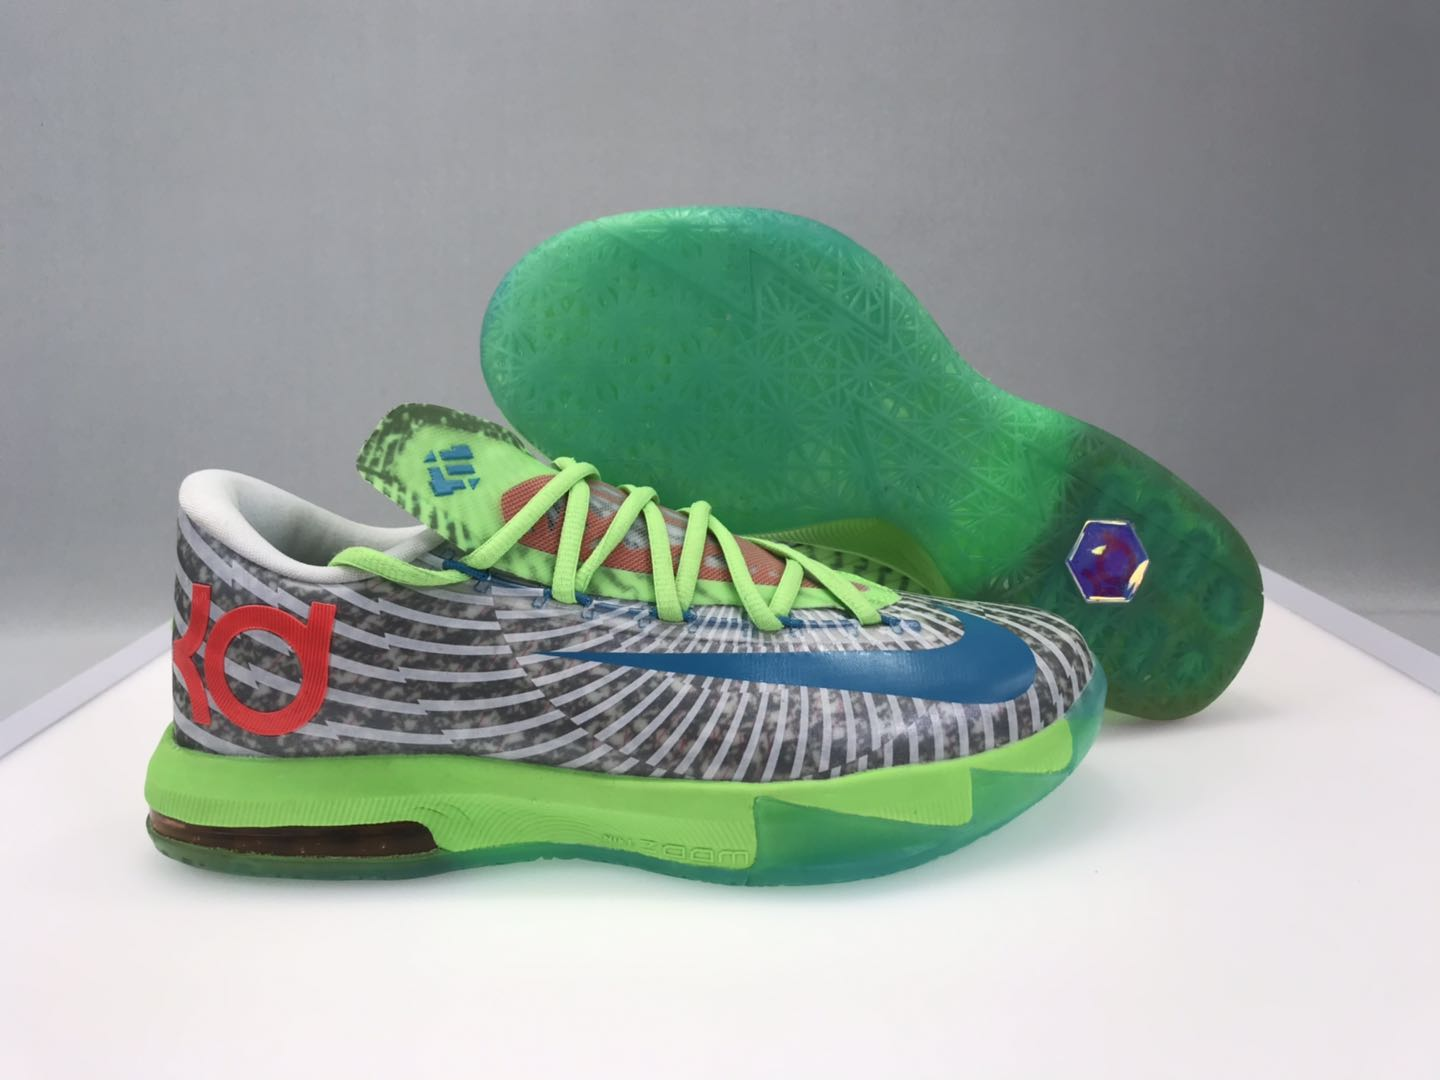 Nike KD 6 Sportive Green Black White Shoes